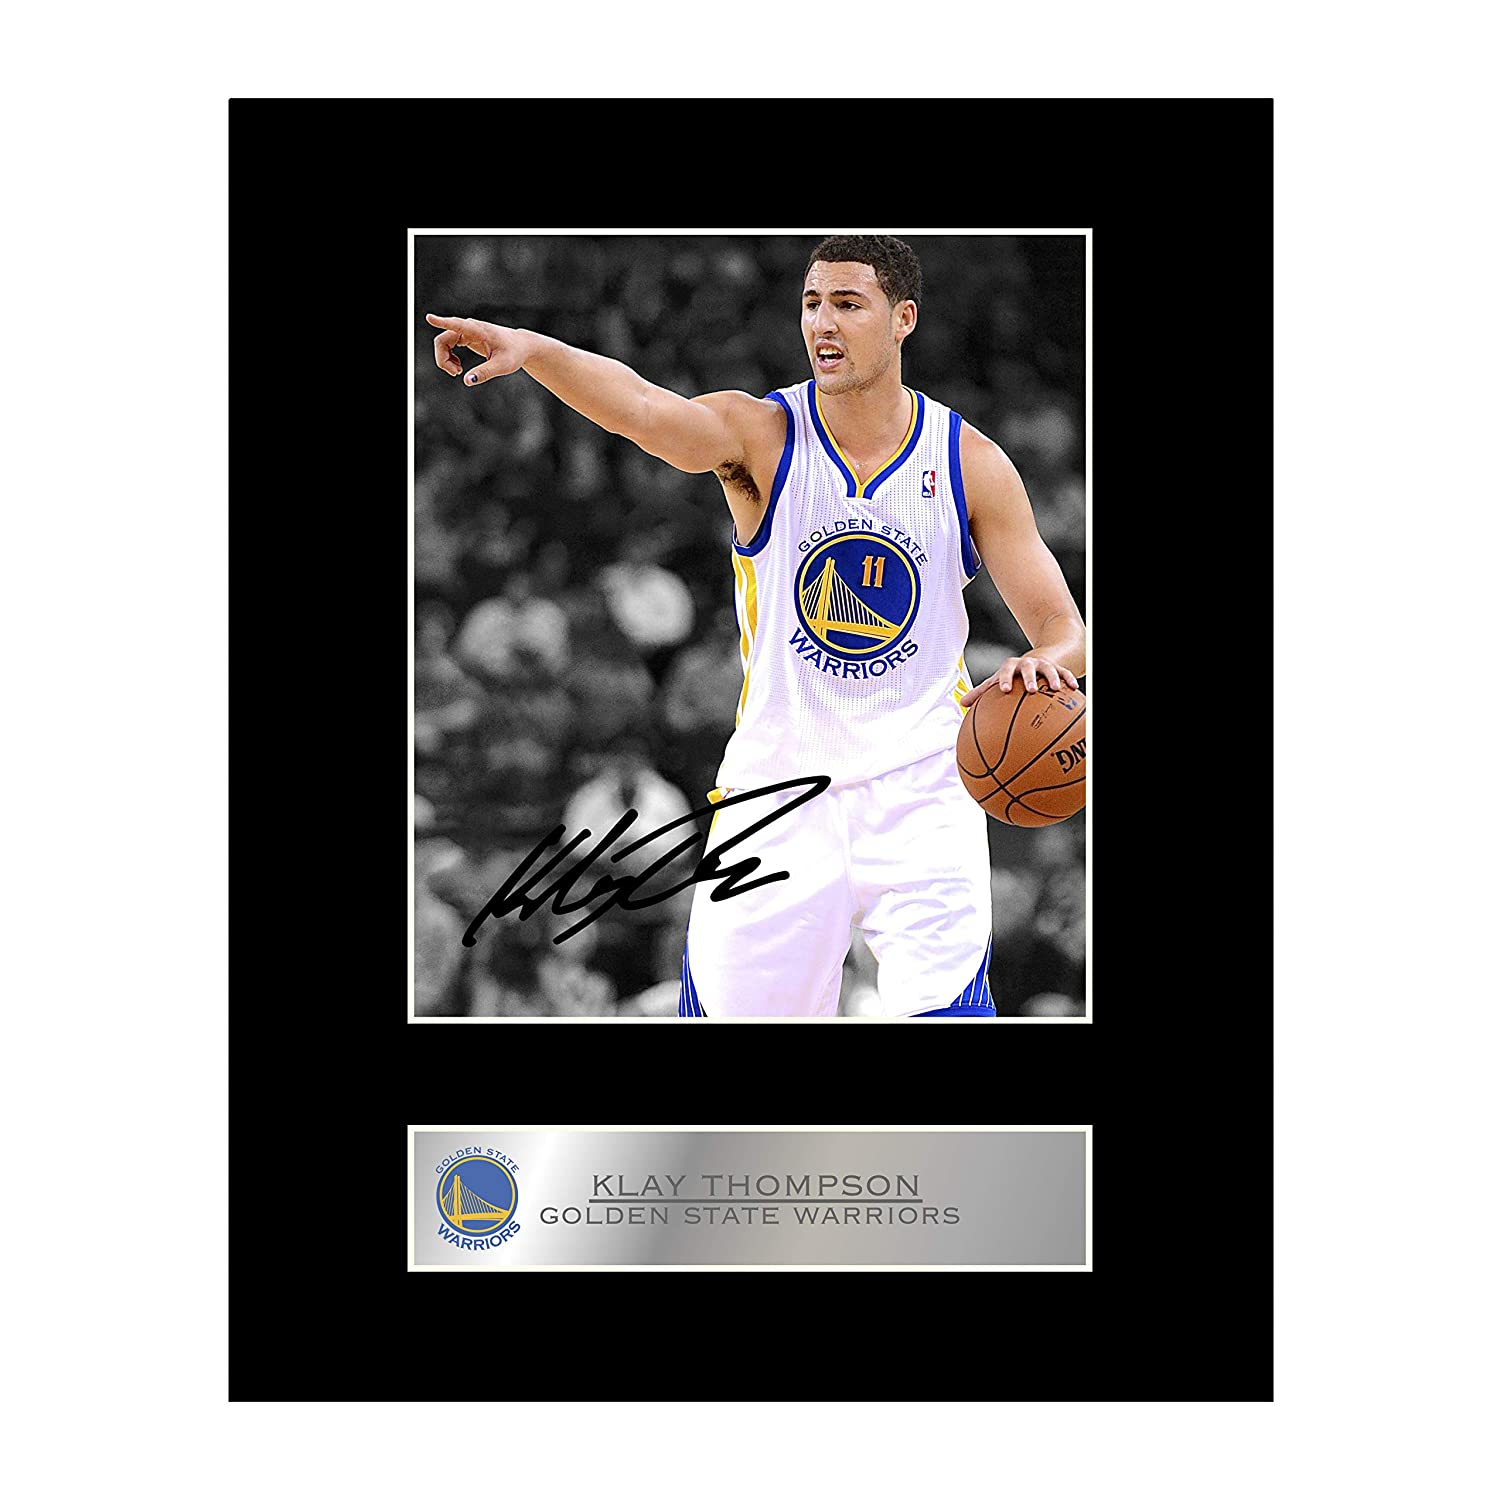 iconic pics Klay Thompson Signed Mounted Photo Display Golden State Warriors